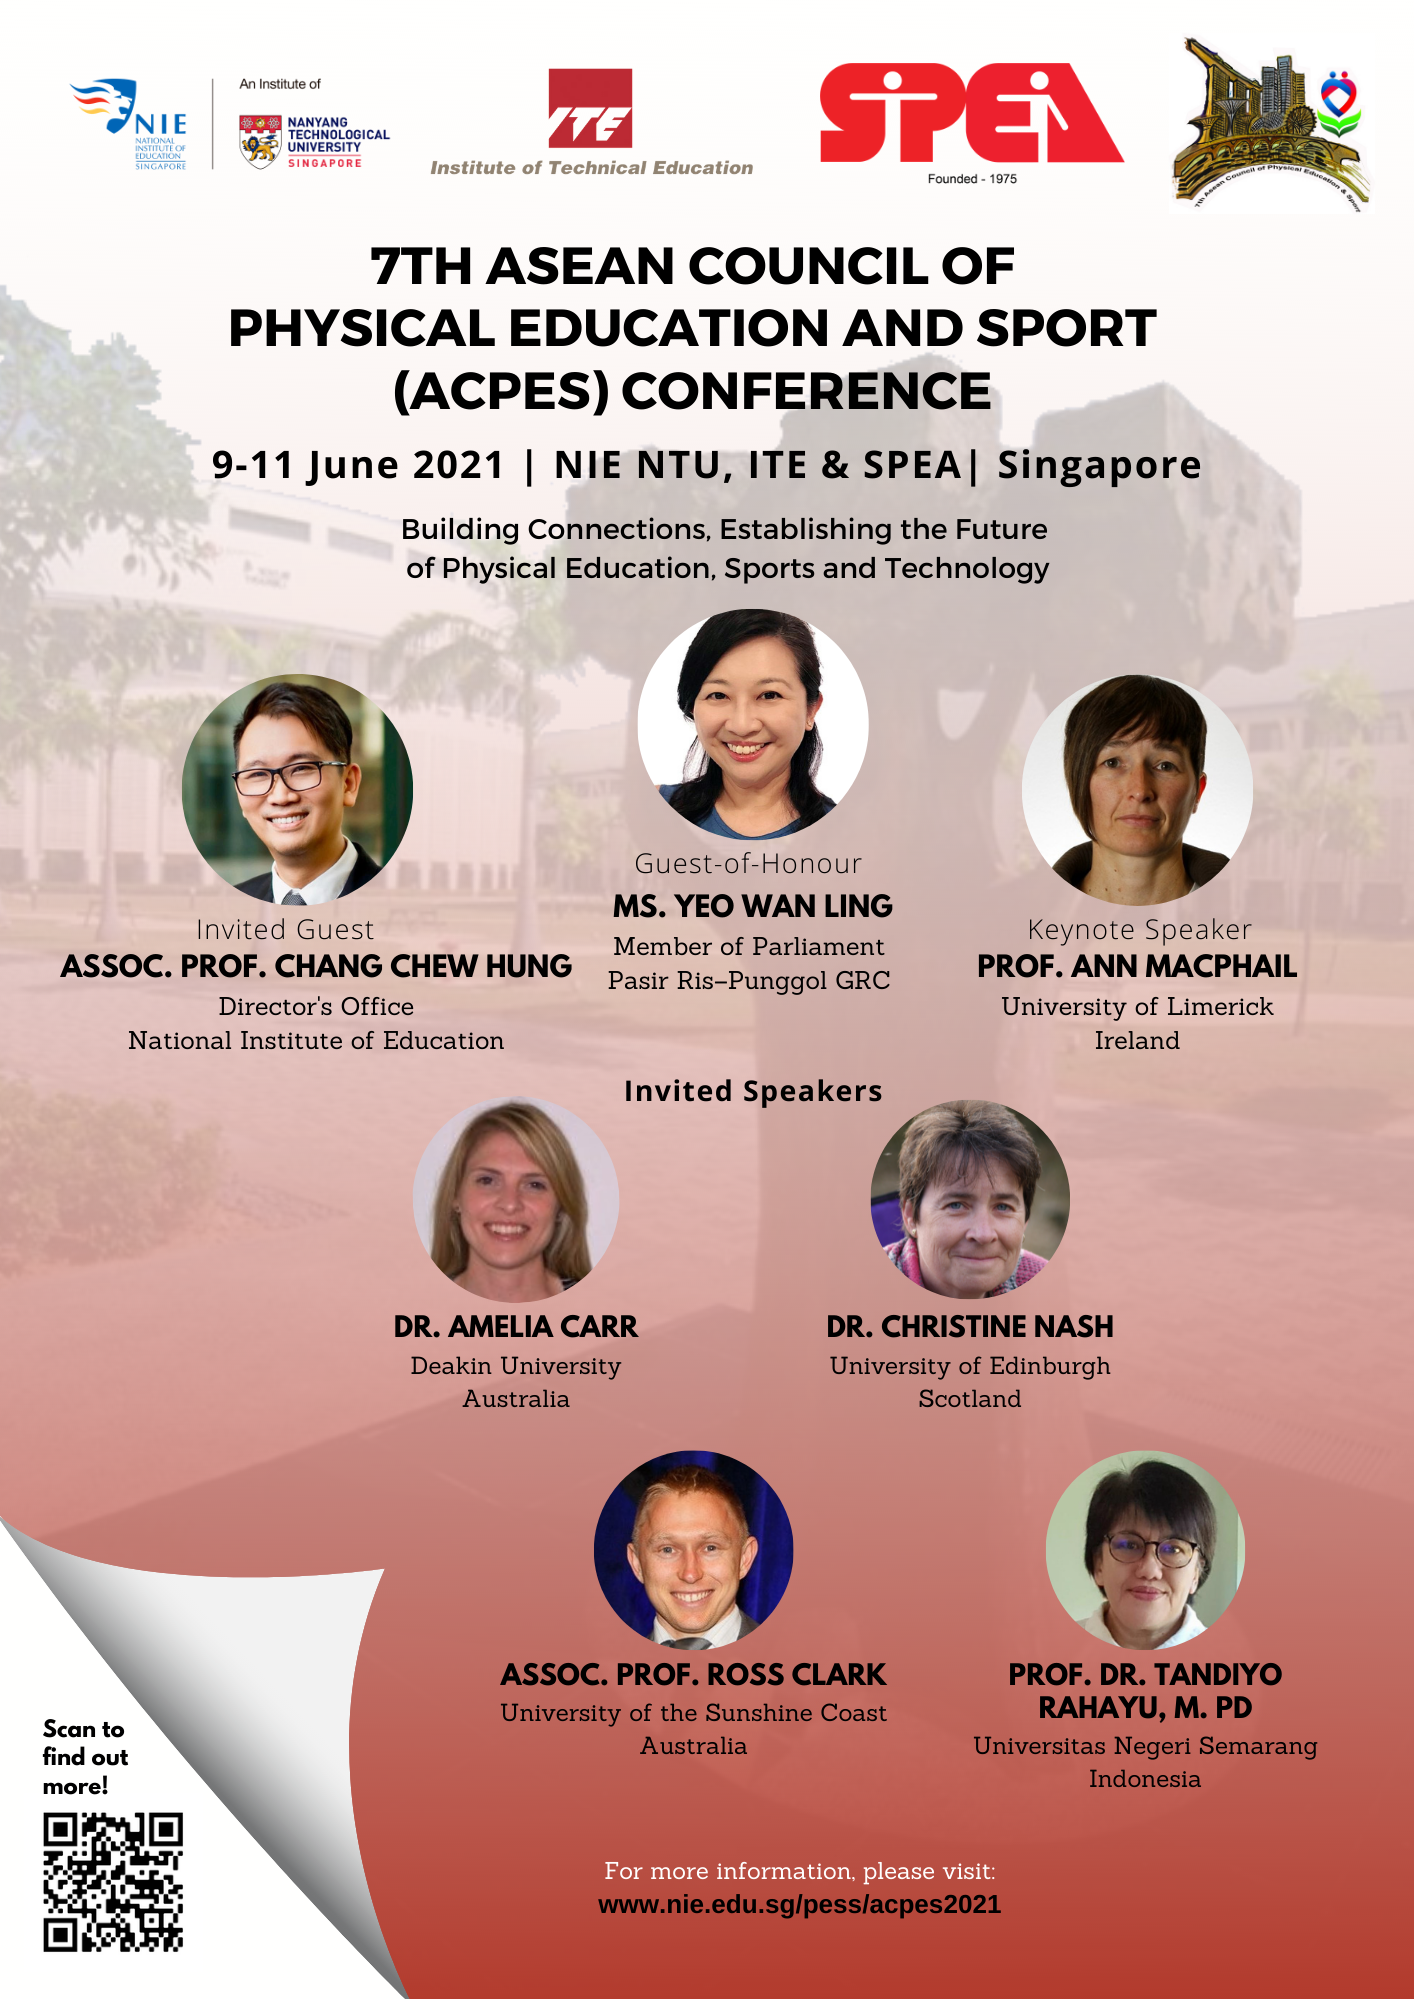 7th ACPES Conference Publicity Poster